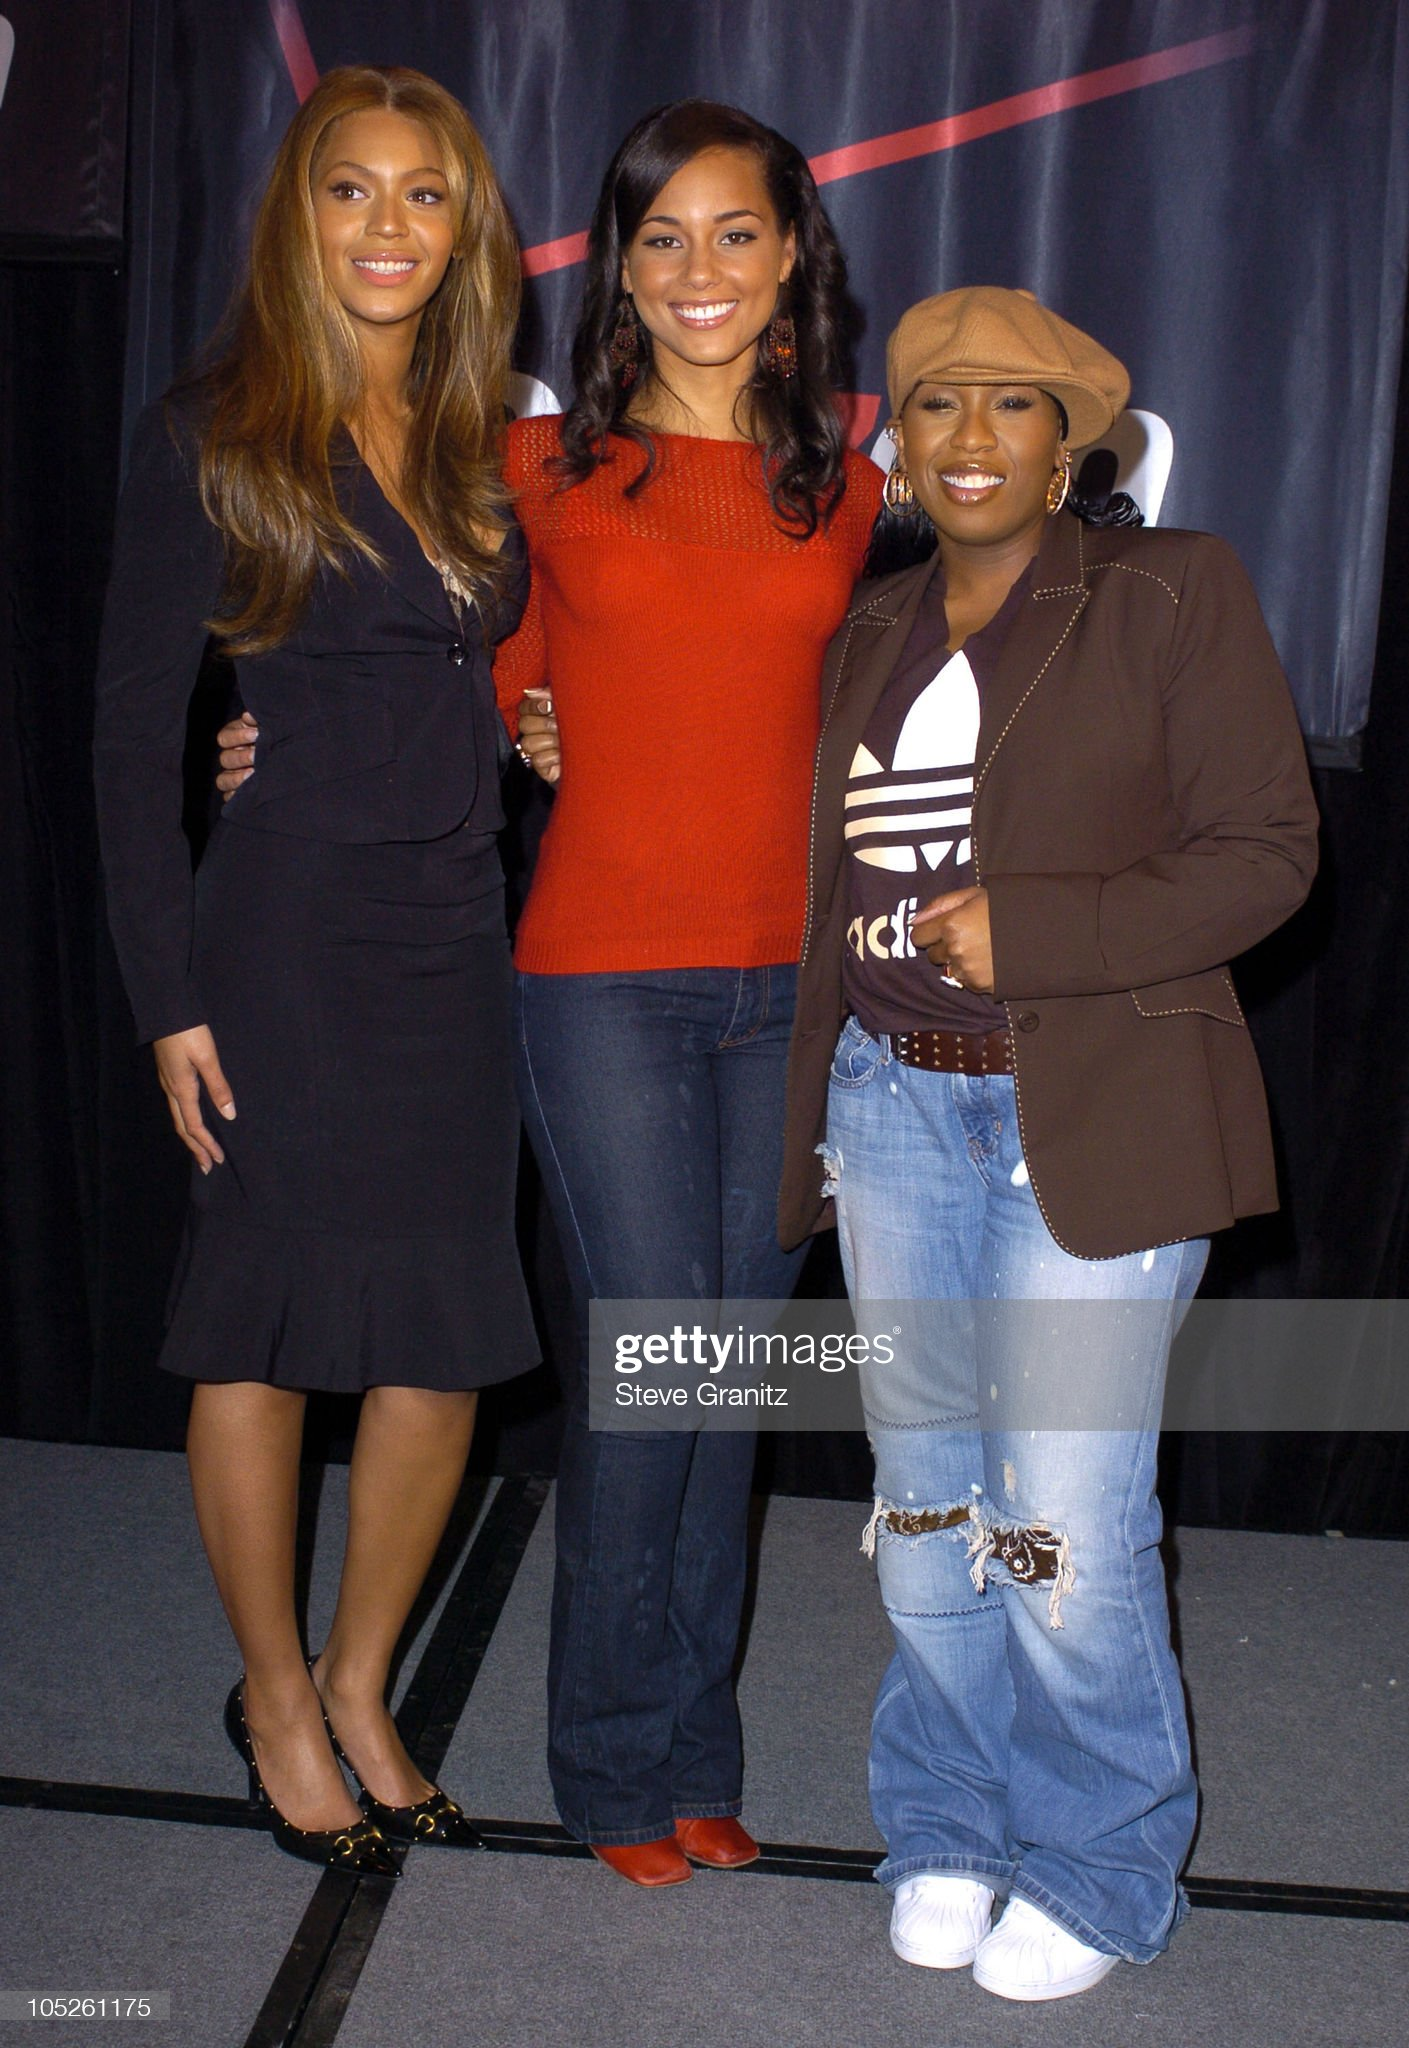 ¿Cuánto mide Alicia Keys? - Altura - Real height Beyonce-and-alicia-keys-and-missy-elliott-during-beyonce-alicia-keys-picture-id105261175?s=2048x2048